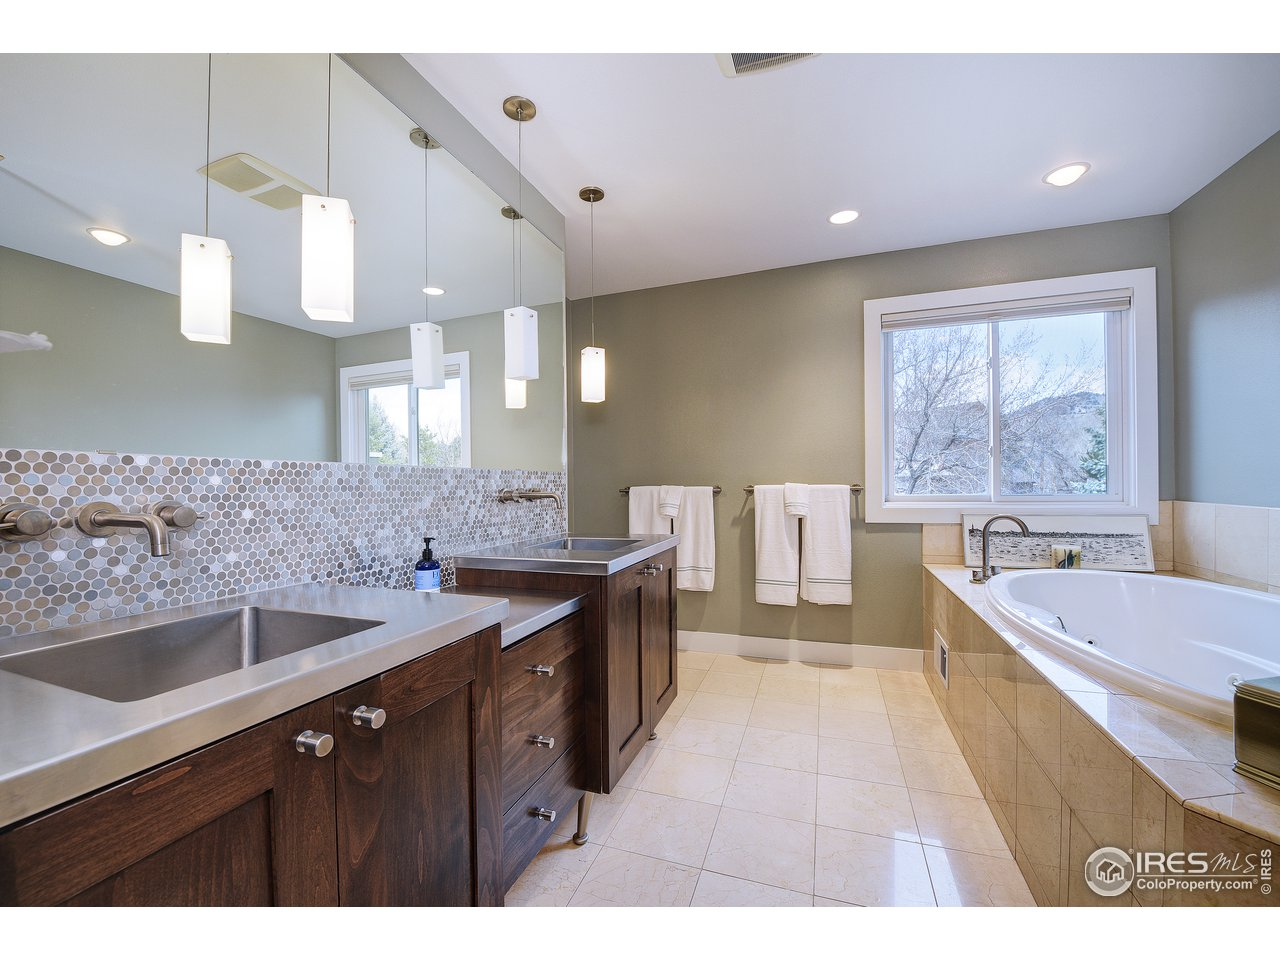 Master bath with stainless steel vanities